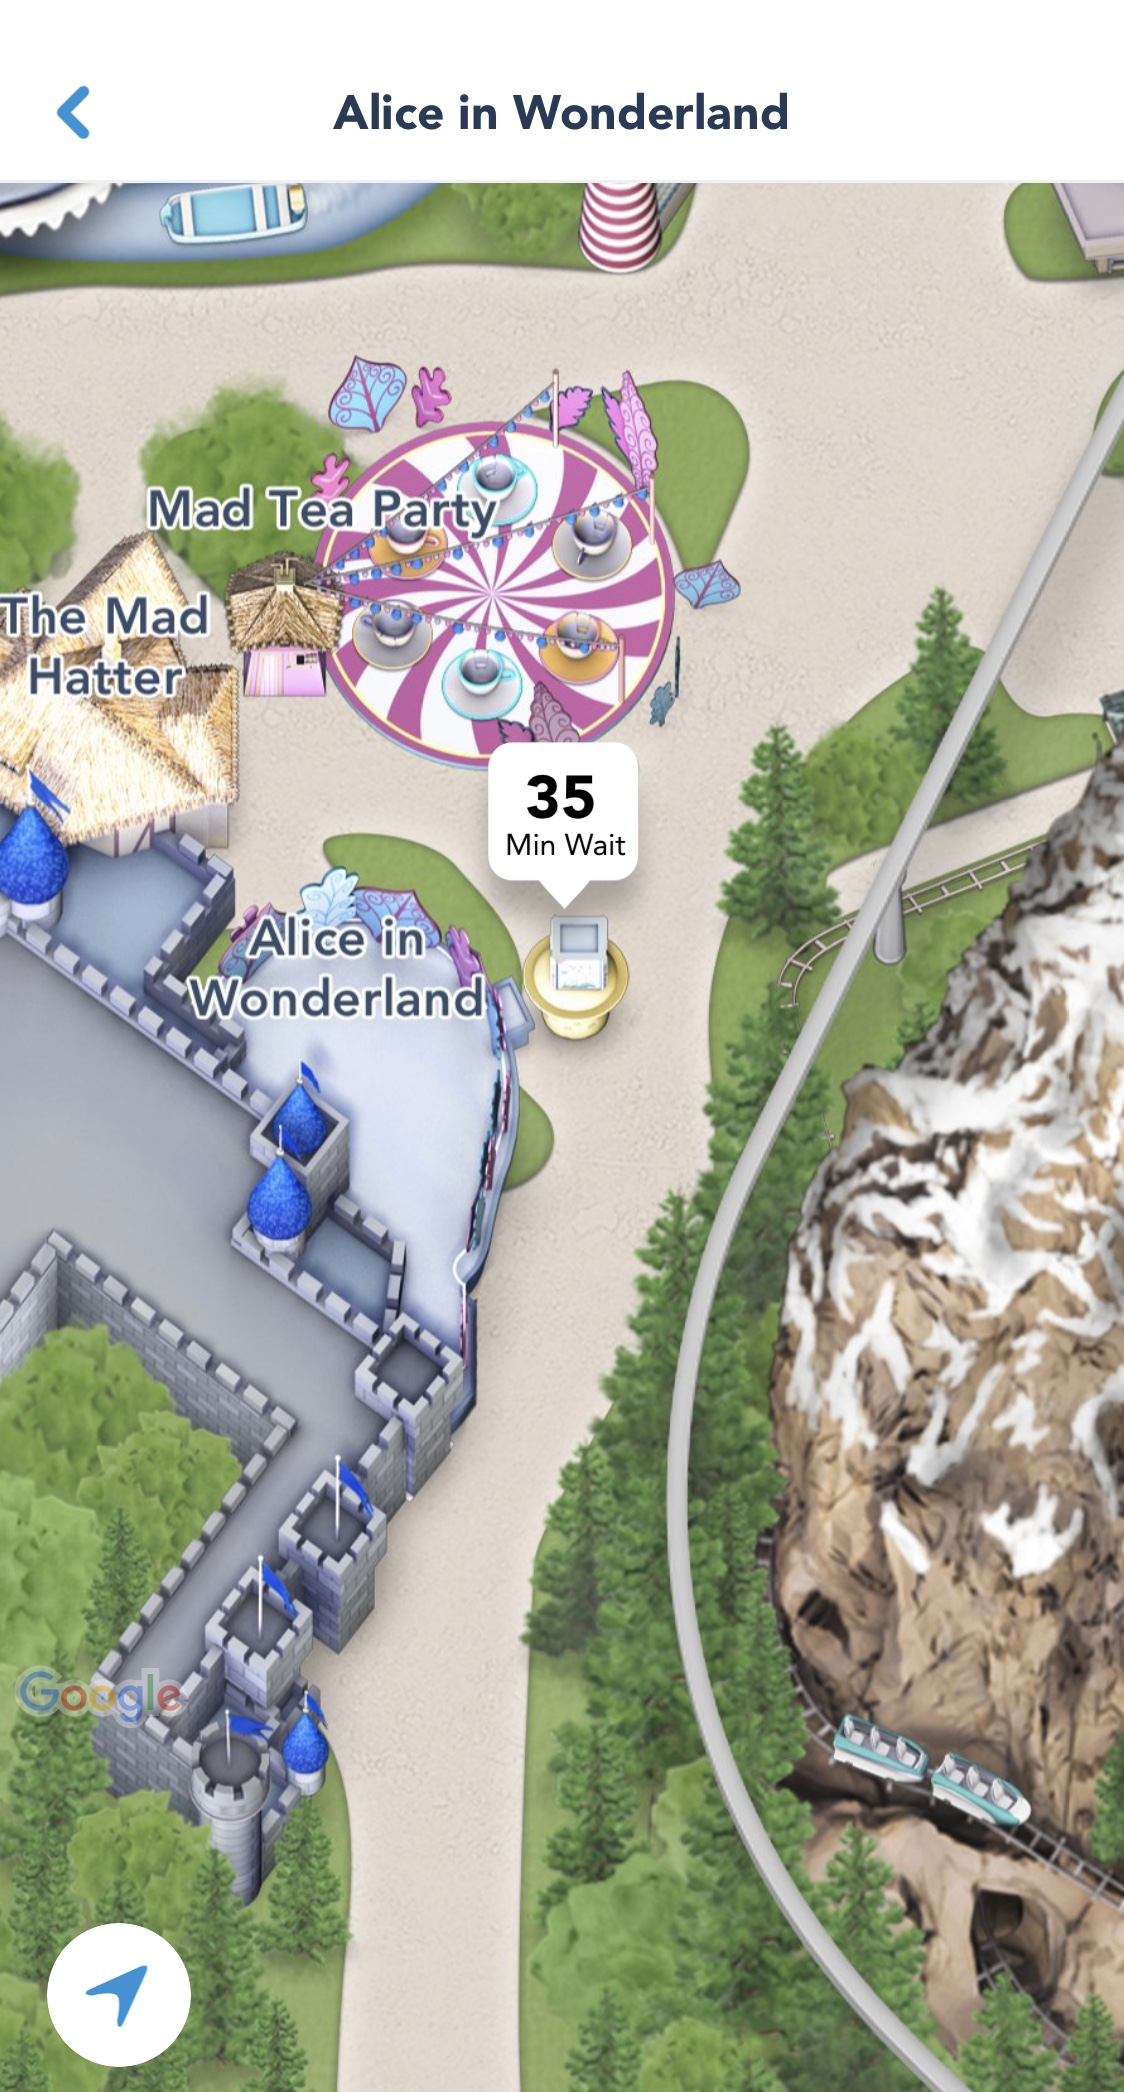 The Disneyland App shows you ride wait times